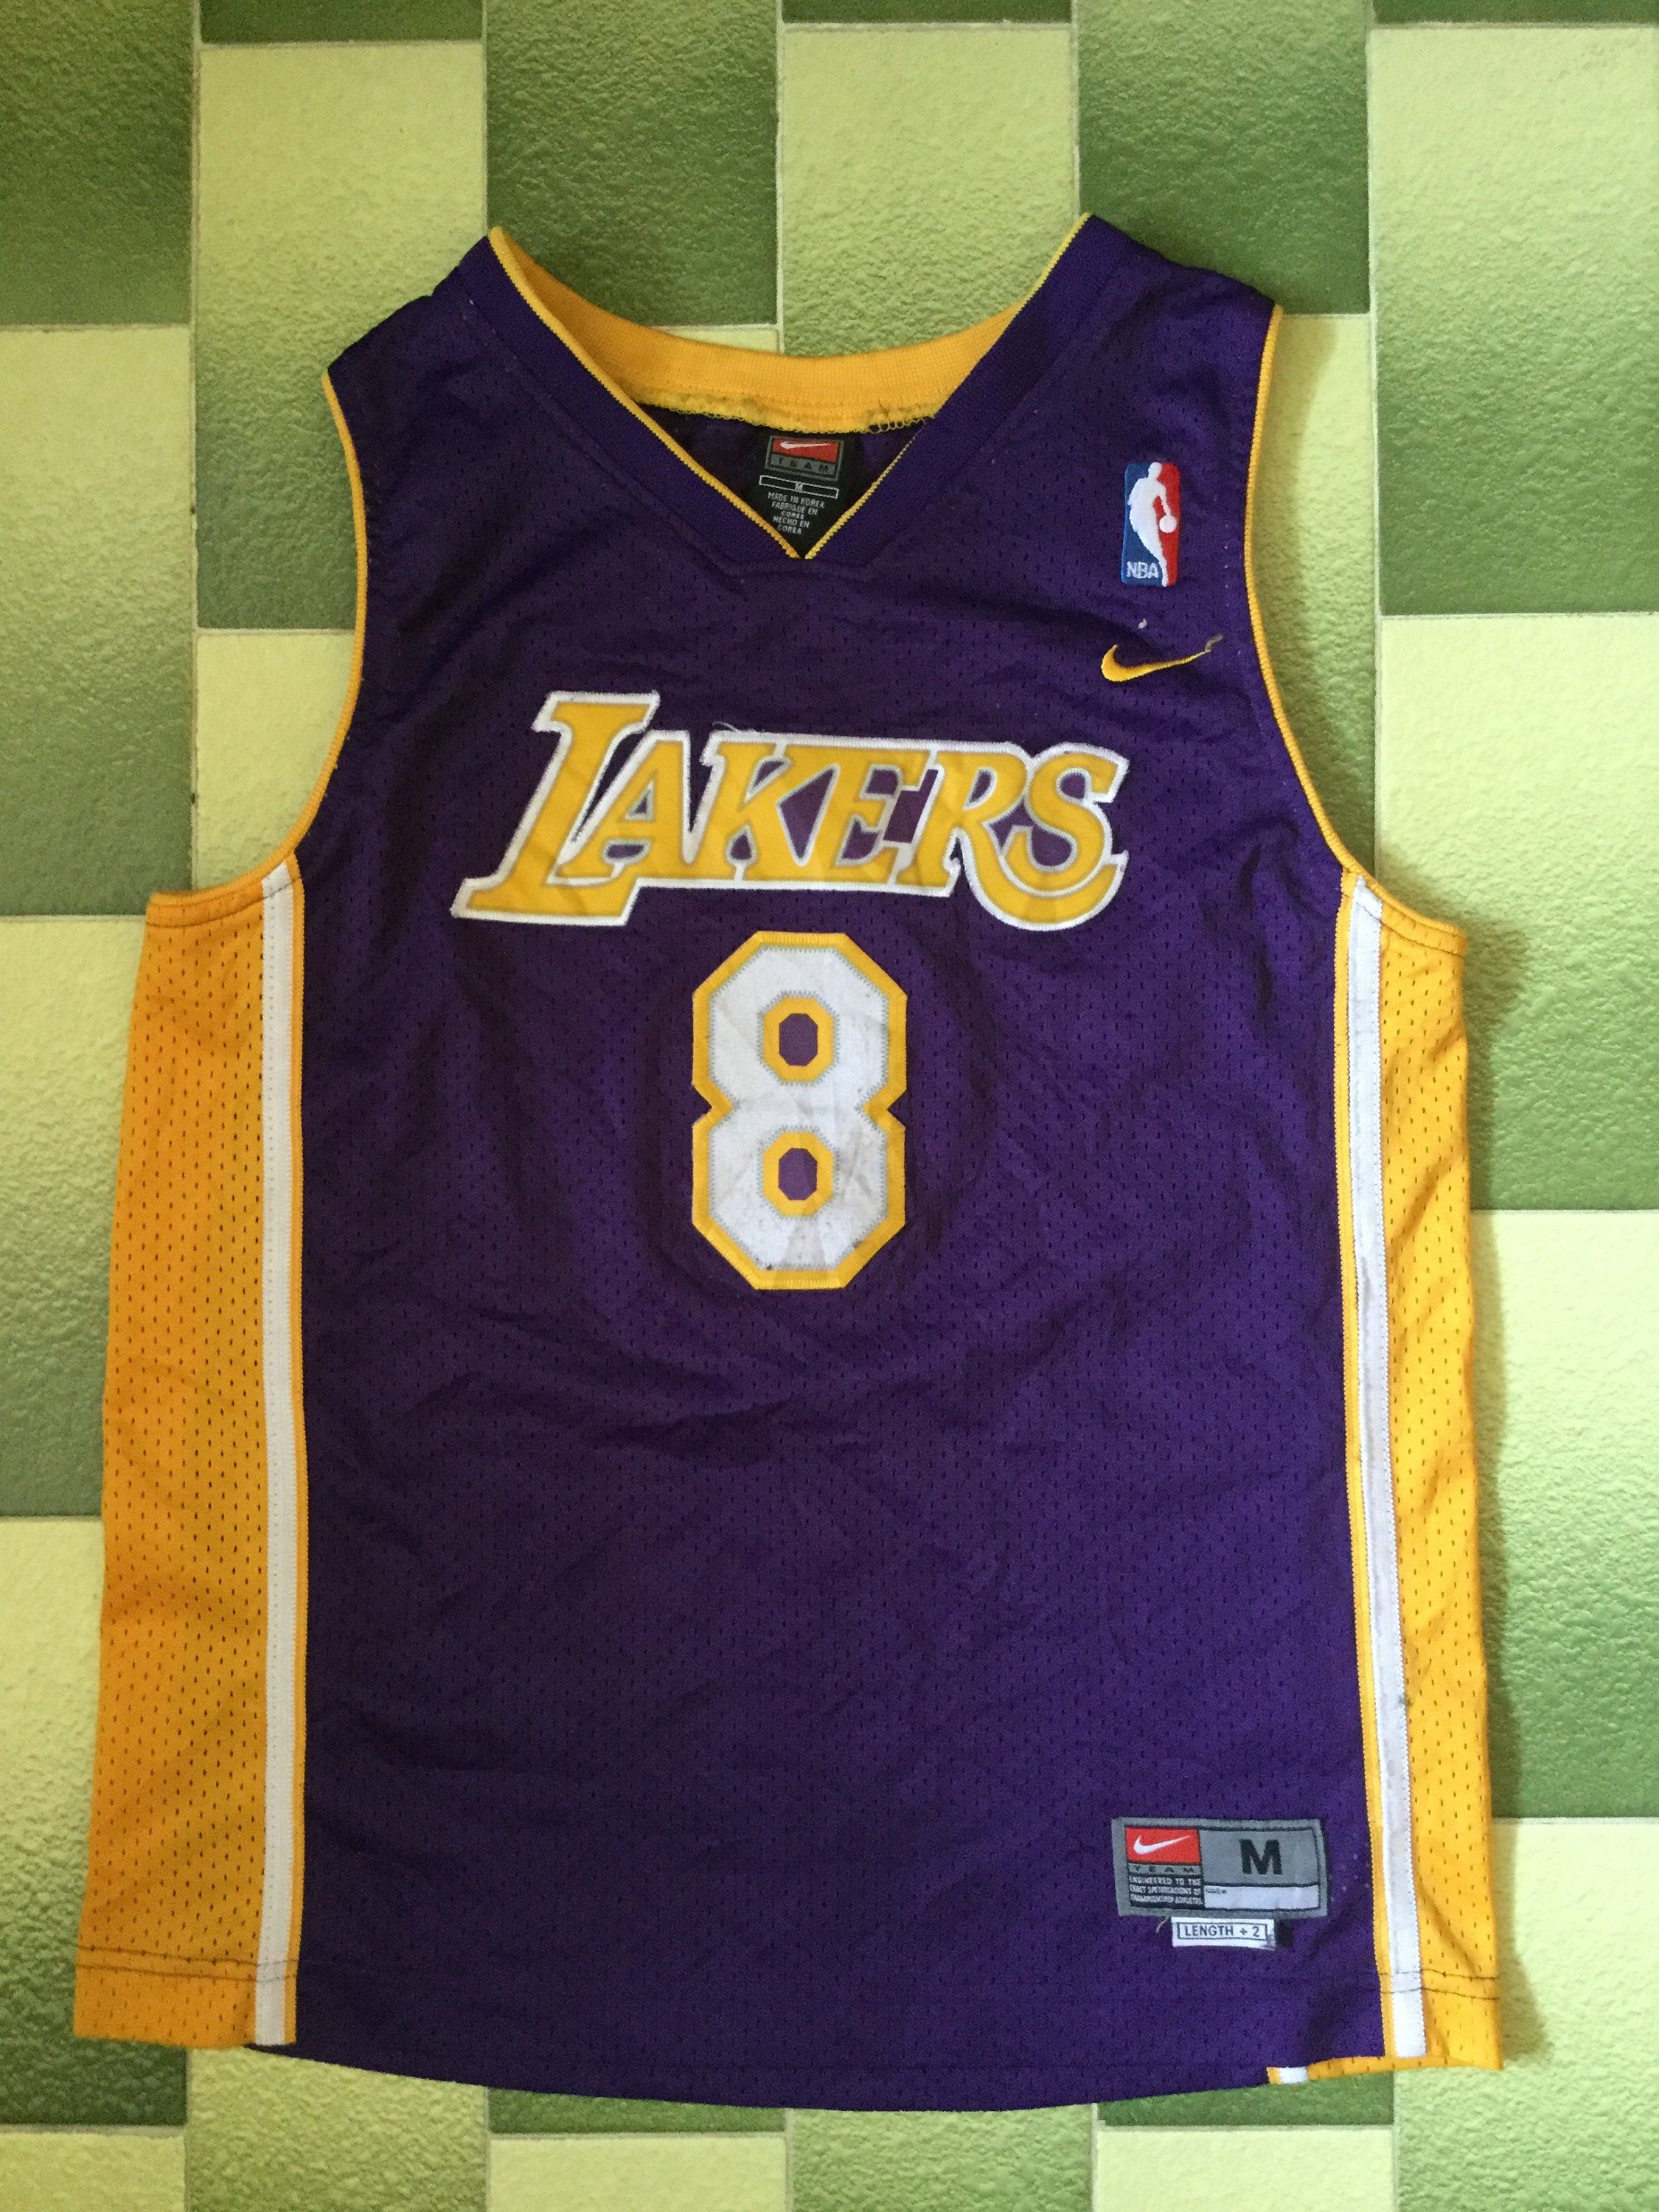 Nike La Lakers Kobe Bryant 8 Nba Jersey Youth Size M Etsy Kobe Bryant Lakers Kobe Bryant Lakers Kobe